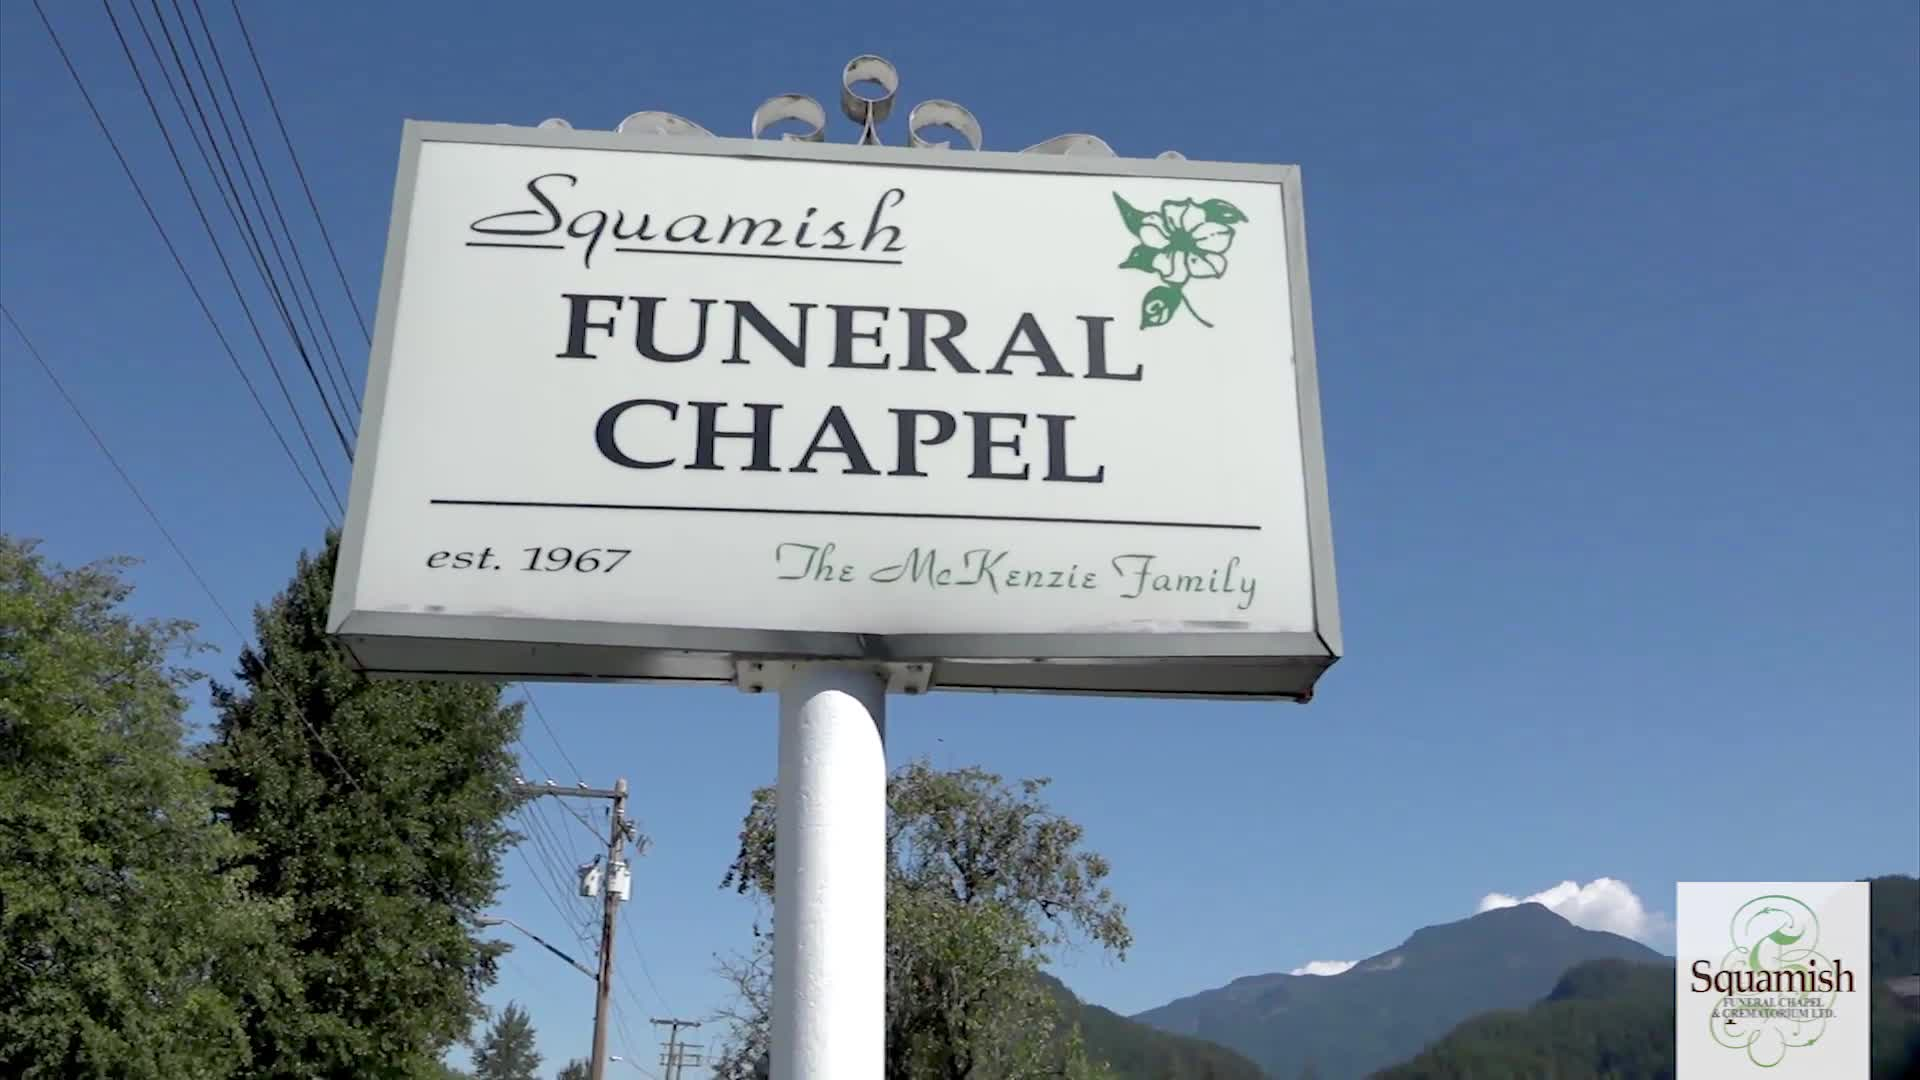 Voir le profil de Squamish Funeral Chapel Ltd - Cobble Hill